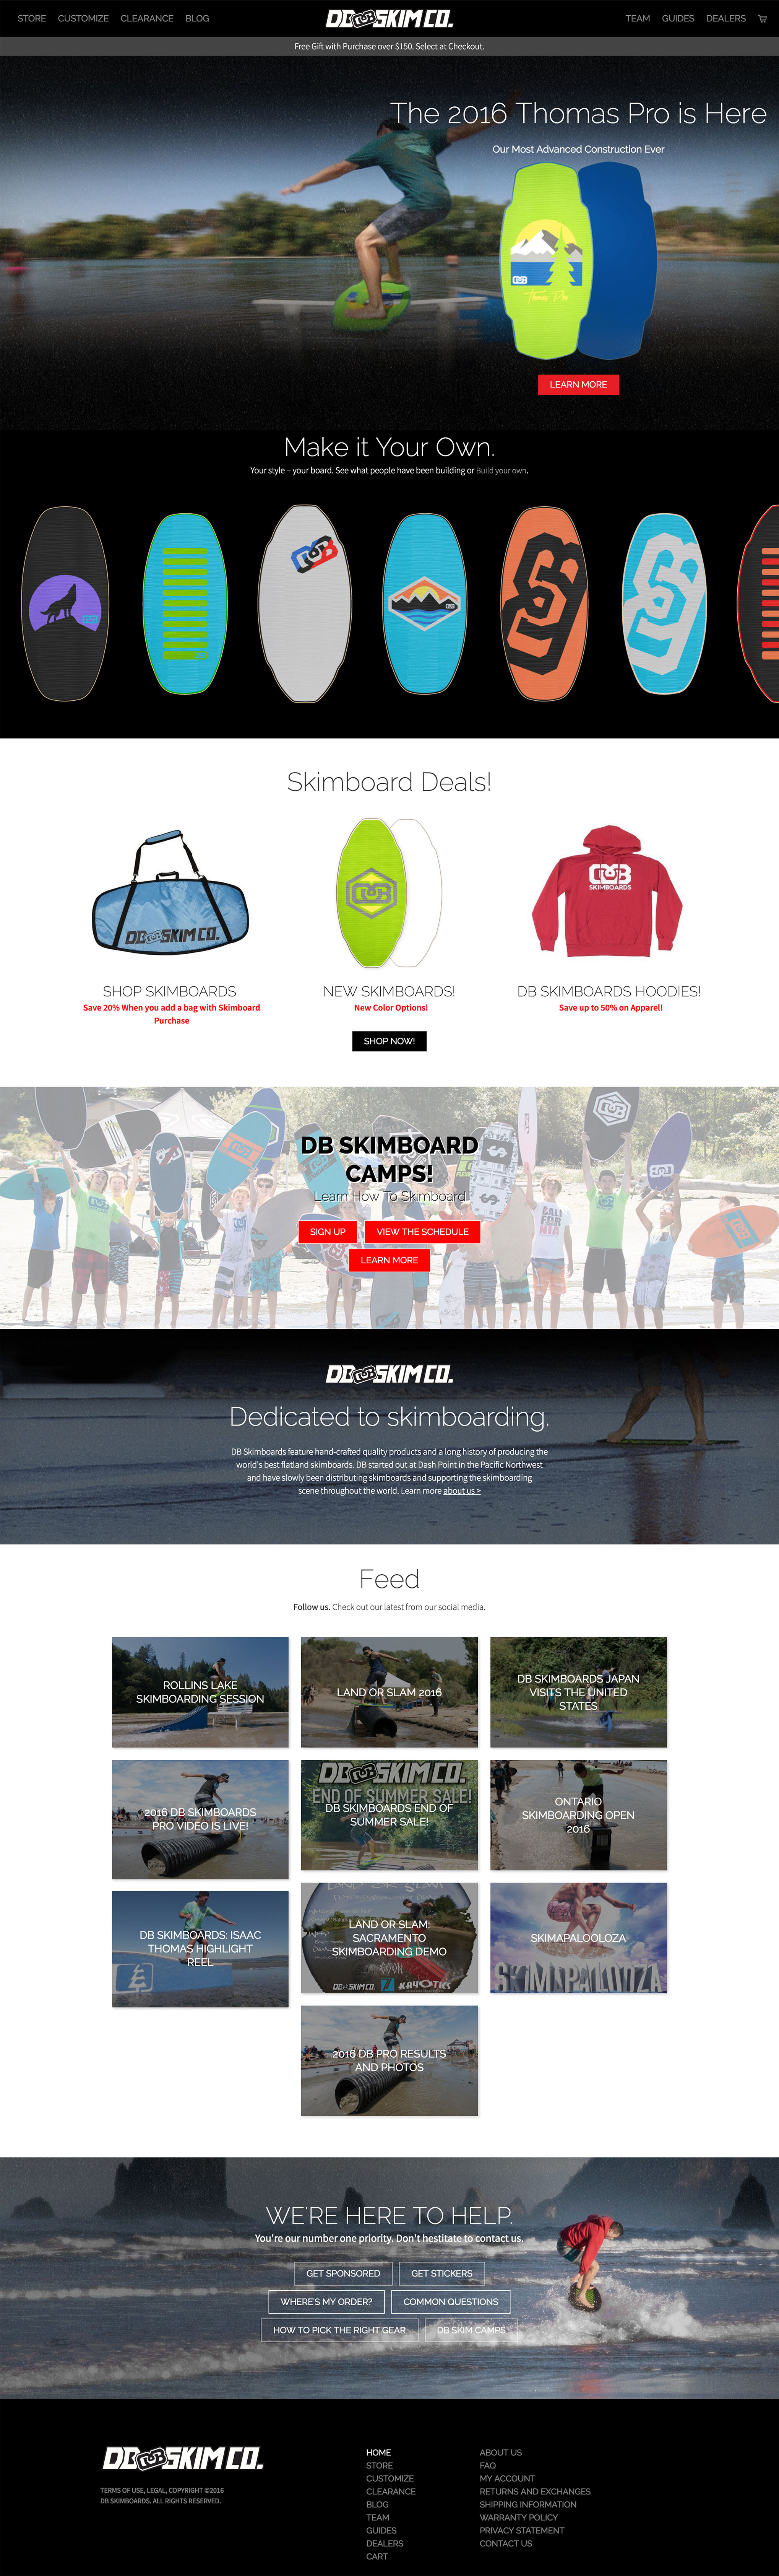 dbskimboards-home-page